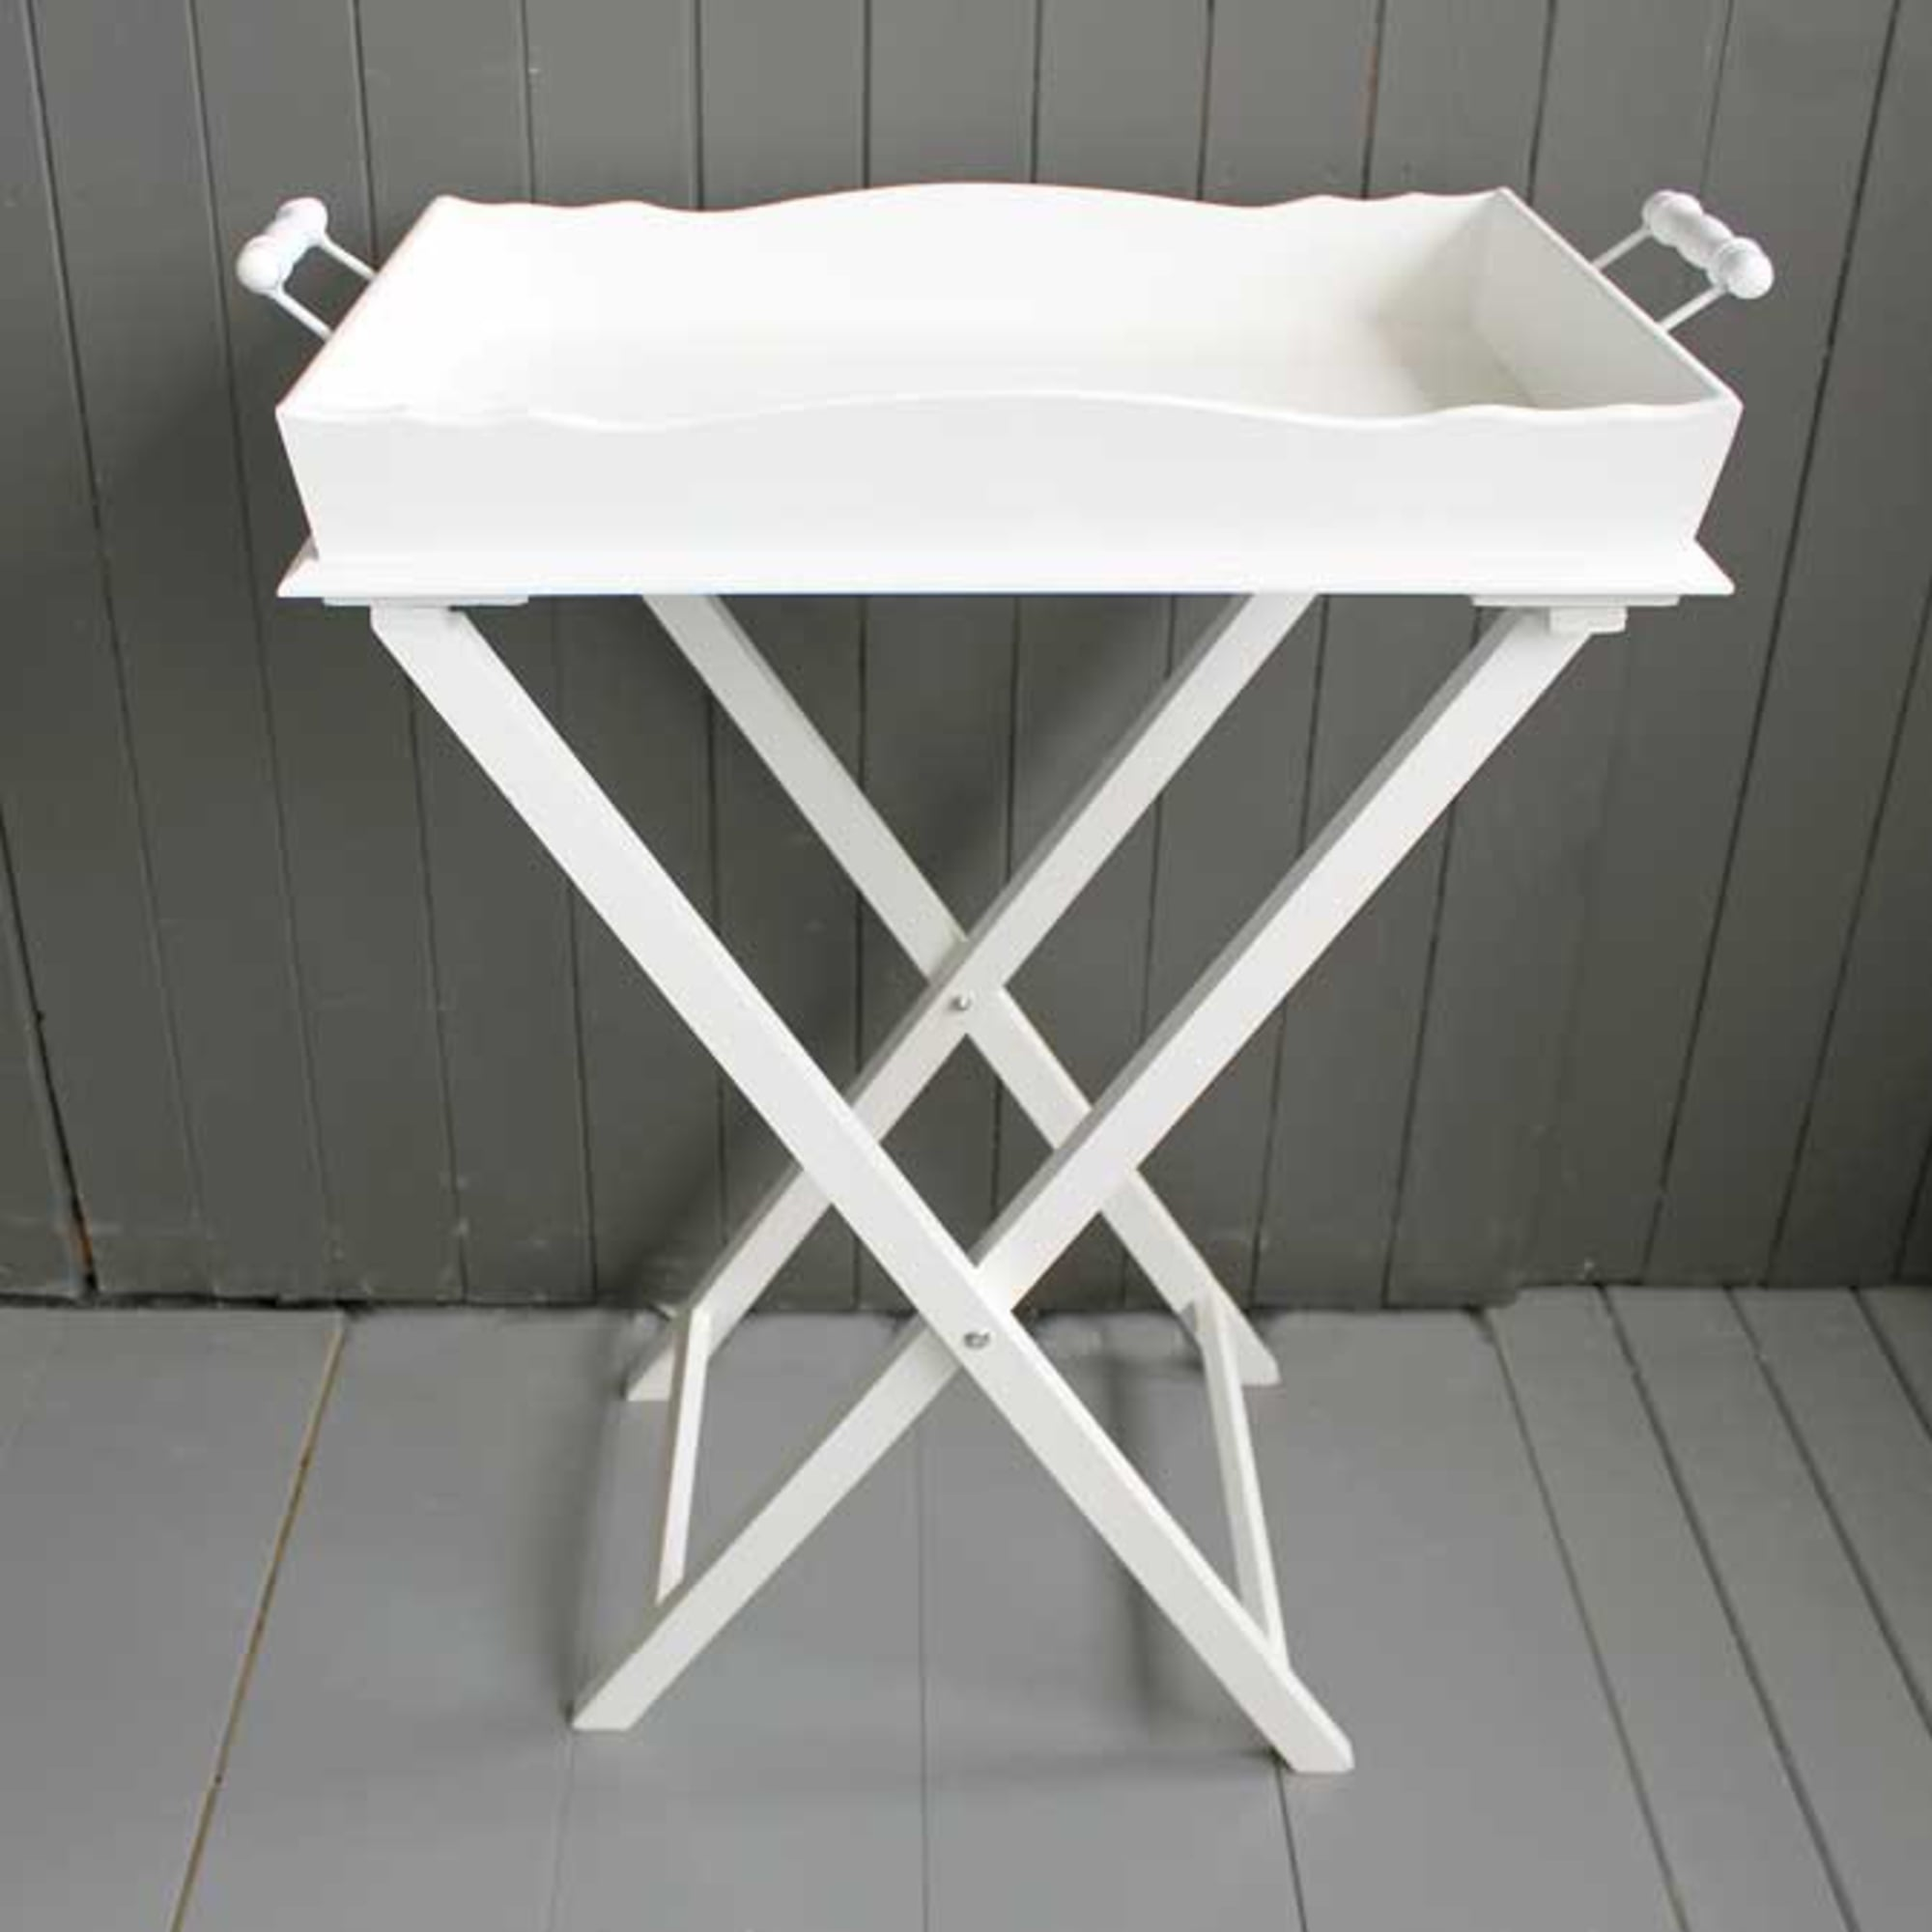 - Provence Butlers Folding Tray Table - Bed, Bath, Home & Travel